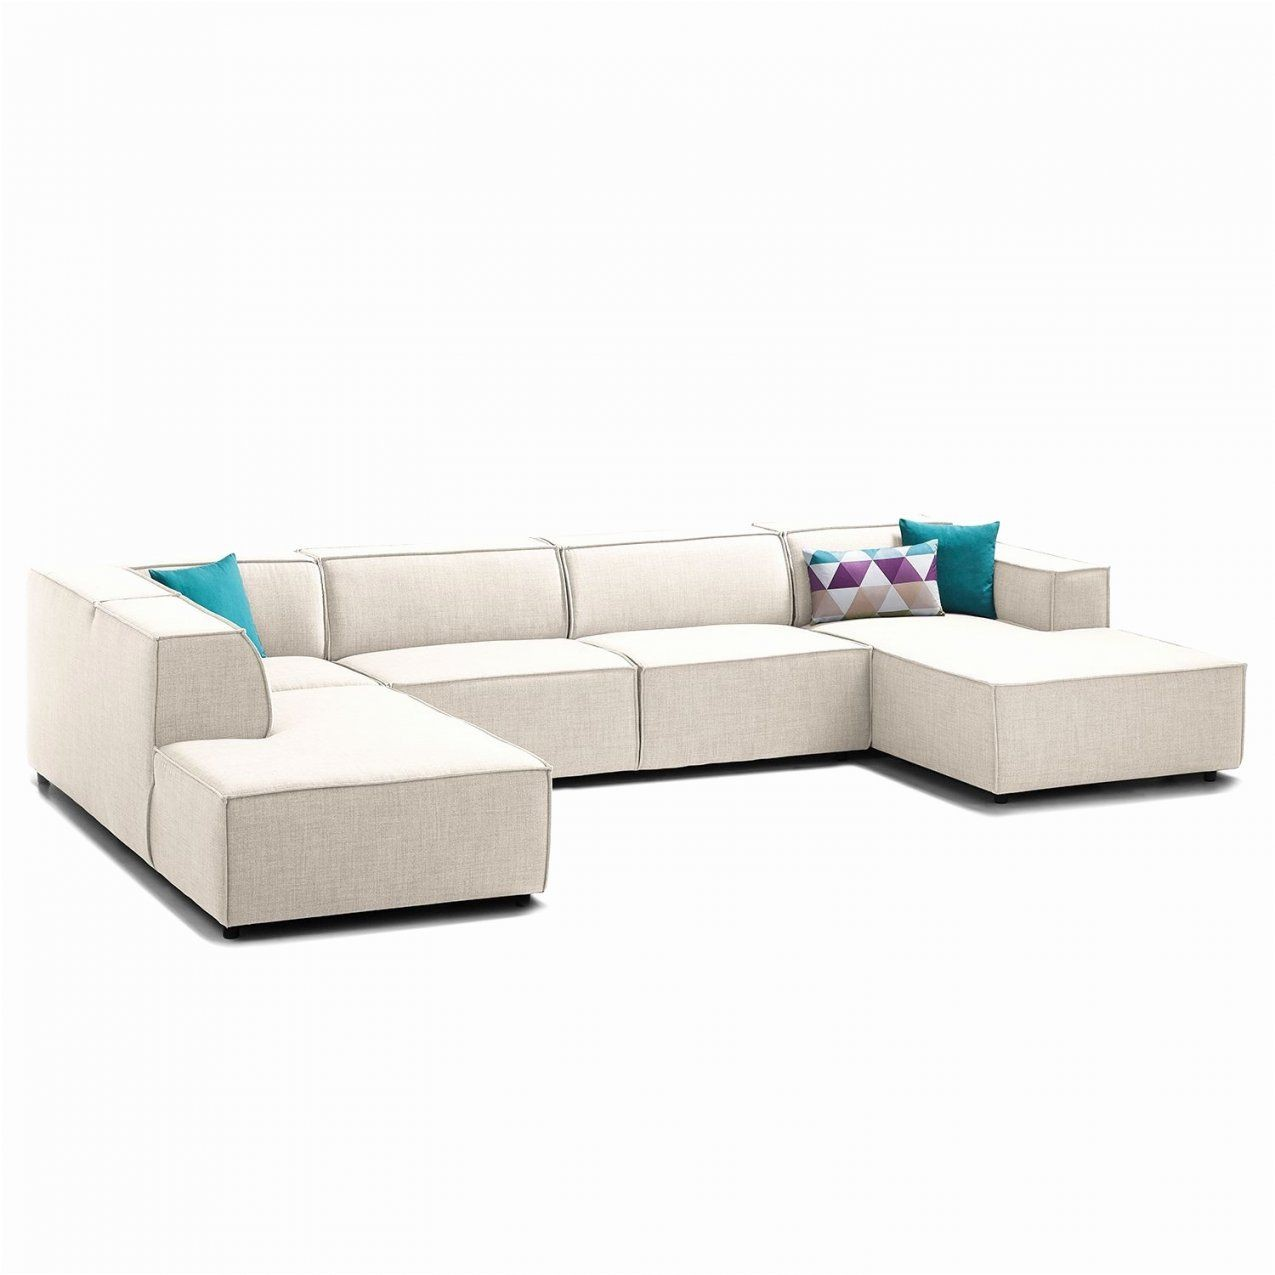 Husse Ecksofa Hussen Ecksofa Ottomane Links Cool Excellent Good Situmore